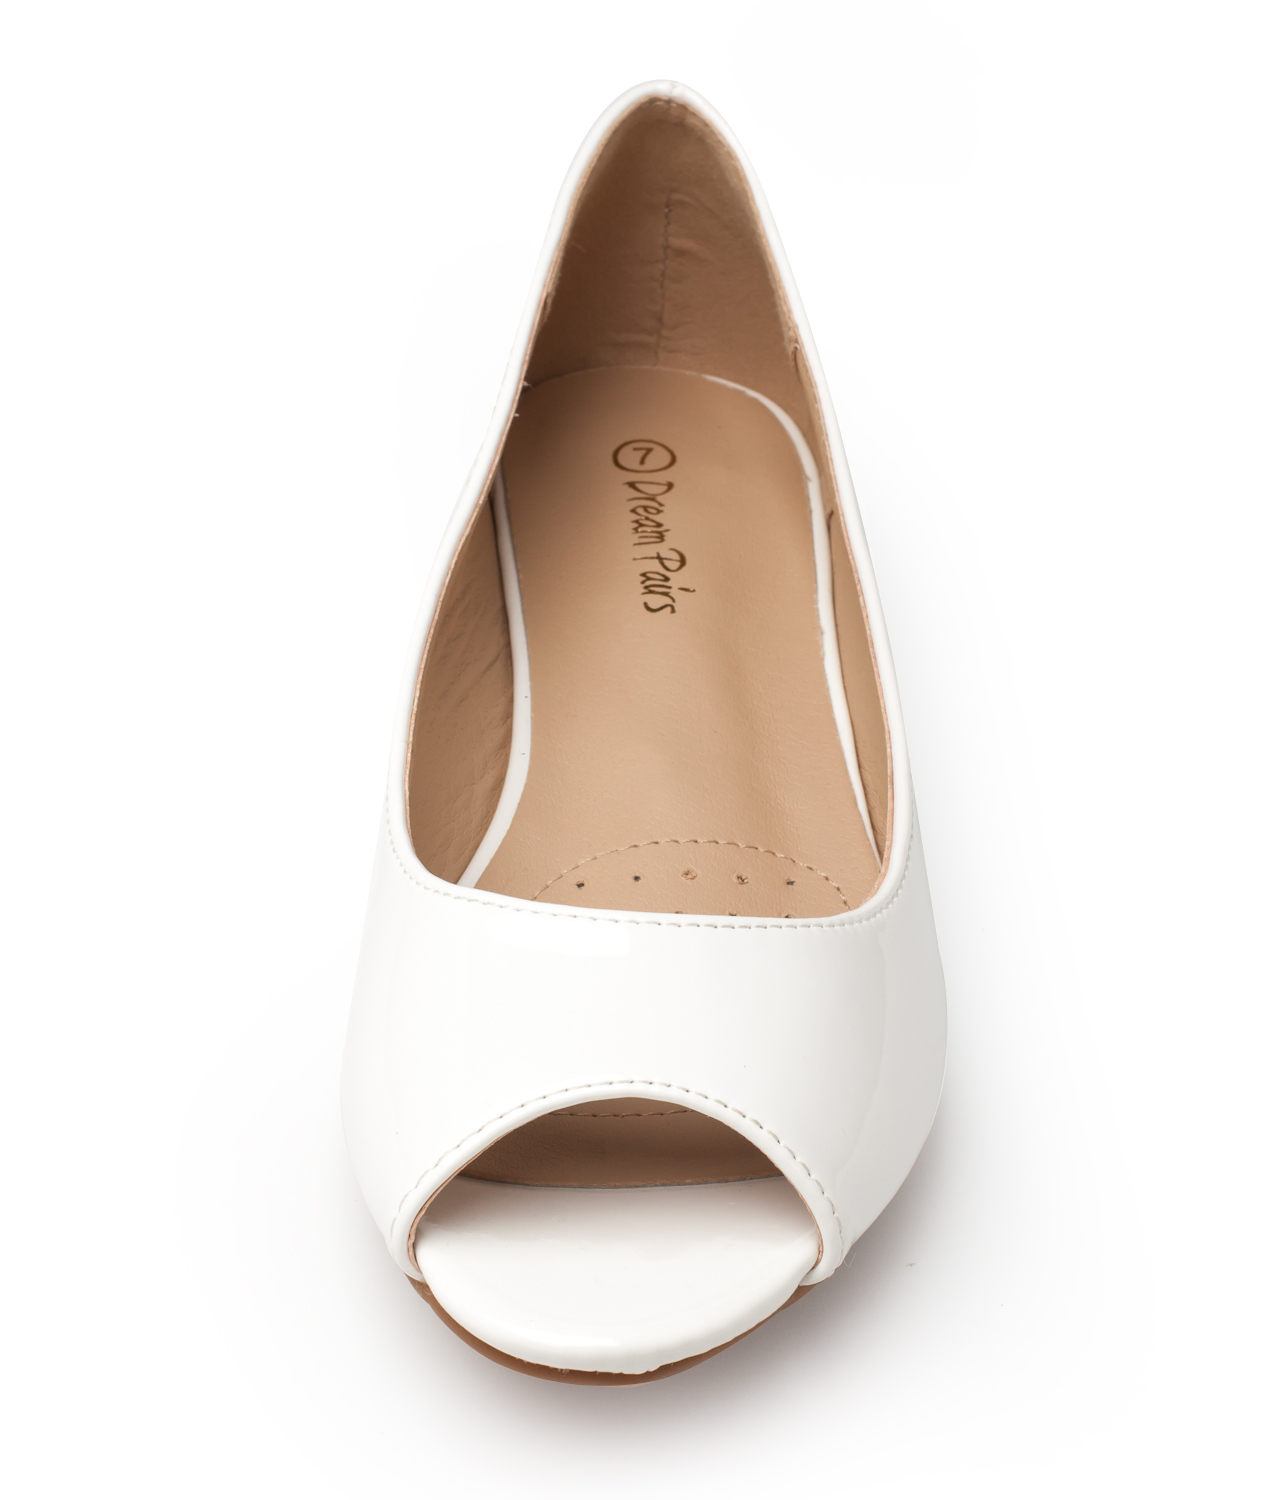 DREAM-PAIRS-Womens-Ballet-Flats-Low-Heel-Open-Toe-Slip-On-Dress-Flat-Shoes thumbnail 25